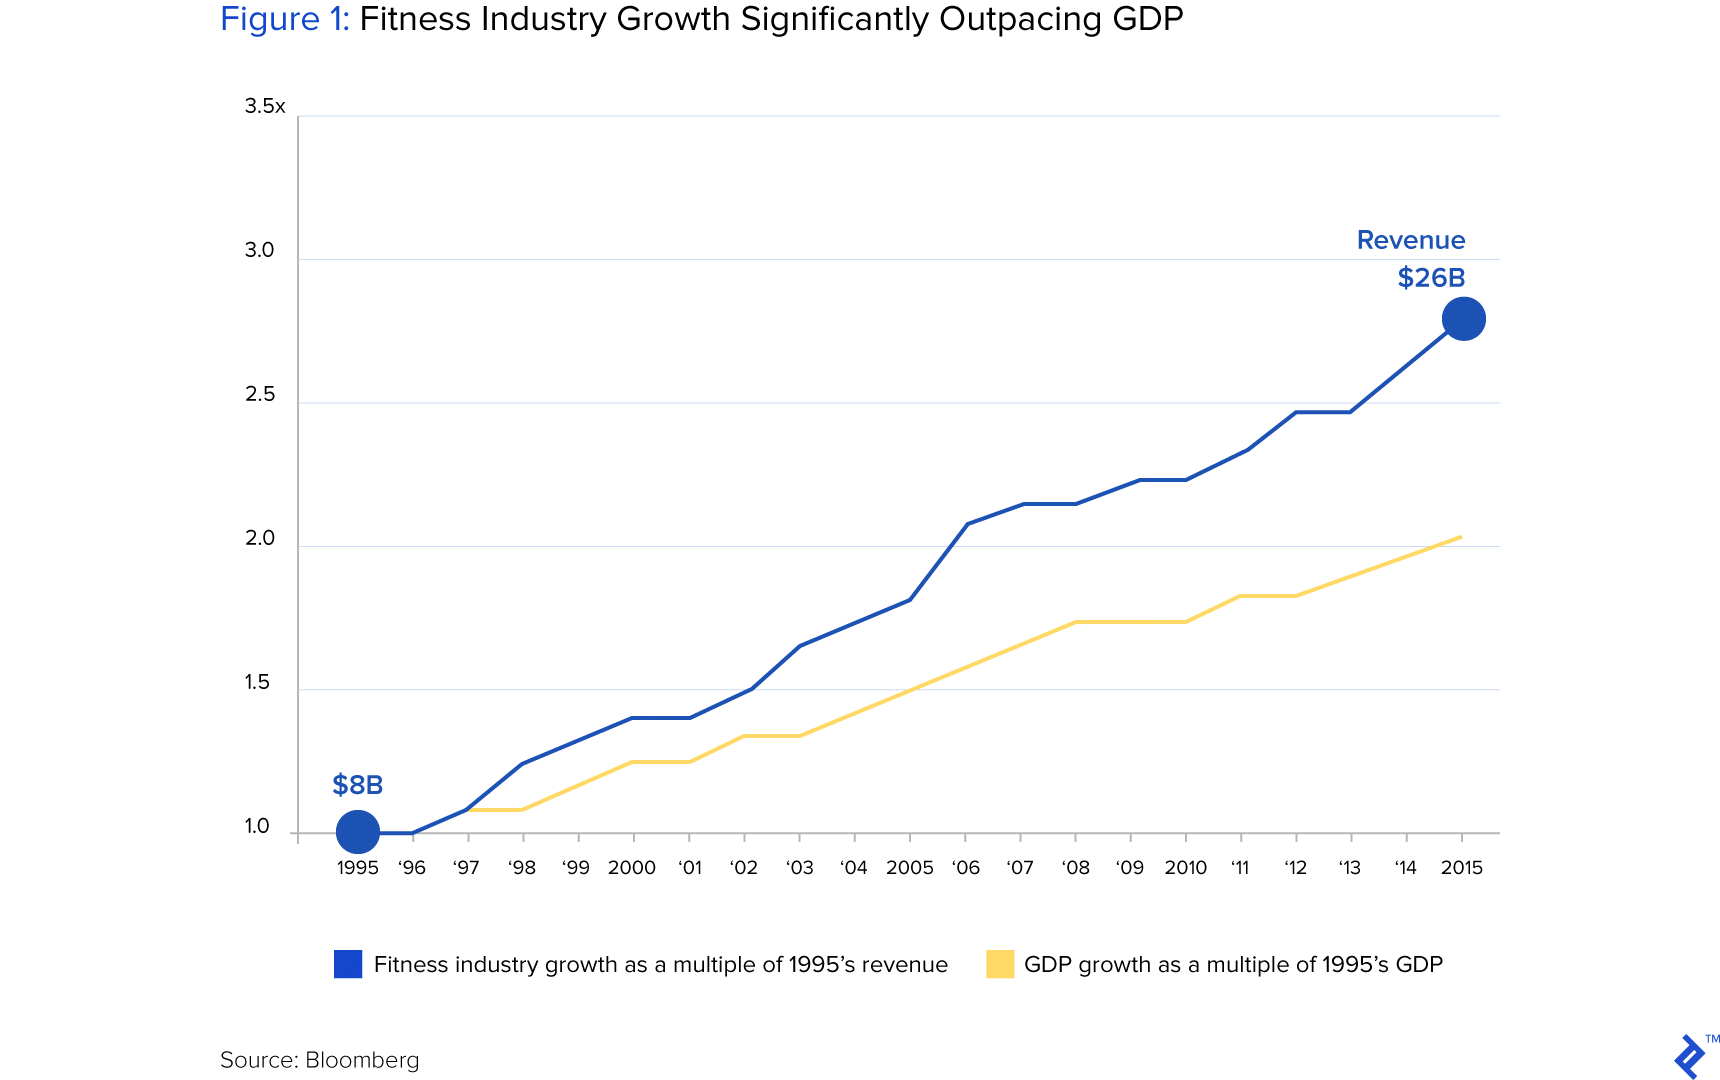 Figure 1: Fitness Industry Growth Significantly Outpacing GDP